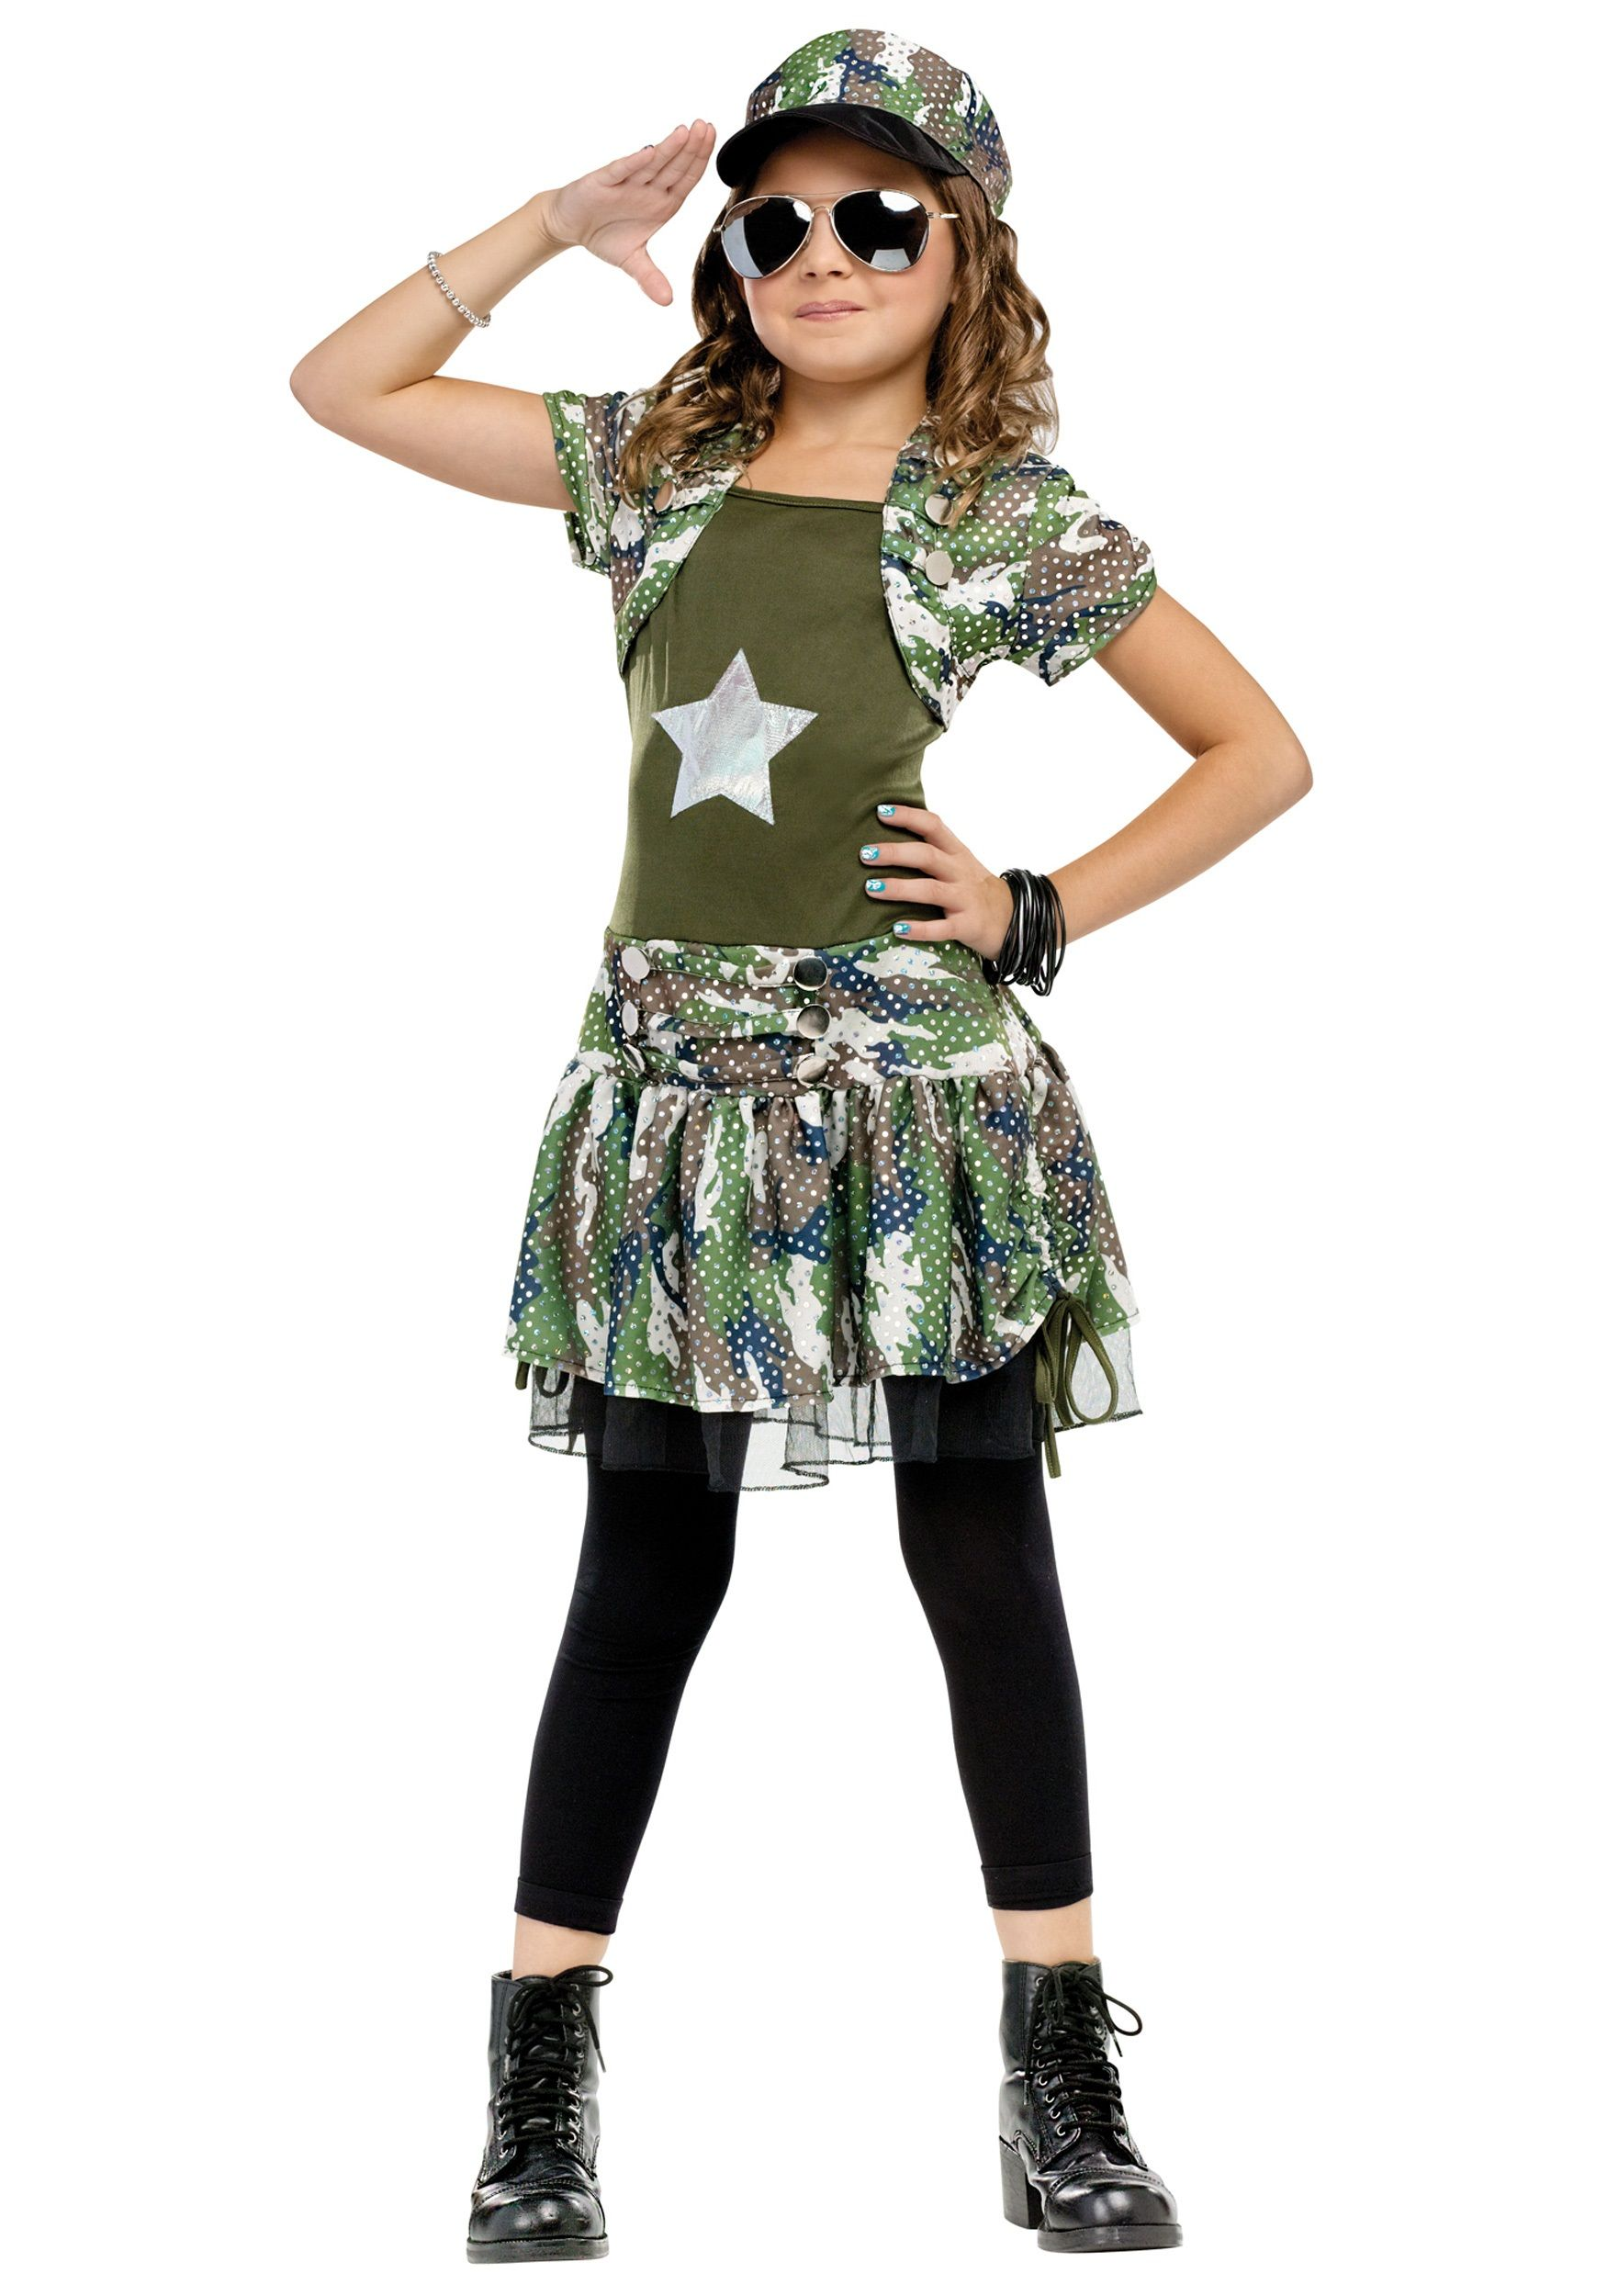 army girl costume for kids | ... Costumes Army Costumes Kids Army Costumes Camo Army Brat Girls Costume  sc 1 st  Pinterest & army girl costume for kids | ... Costumes Army Costumes Kids Army ...